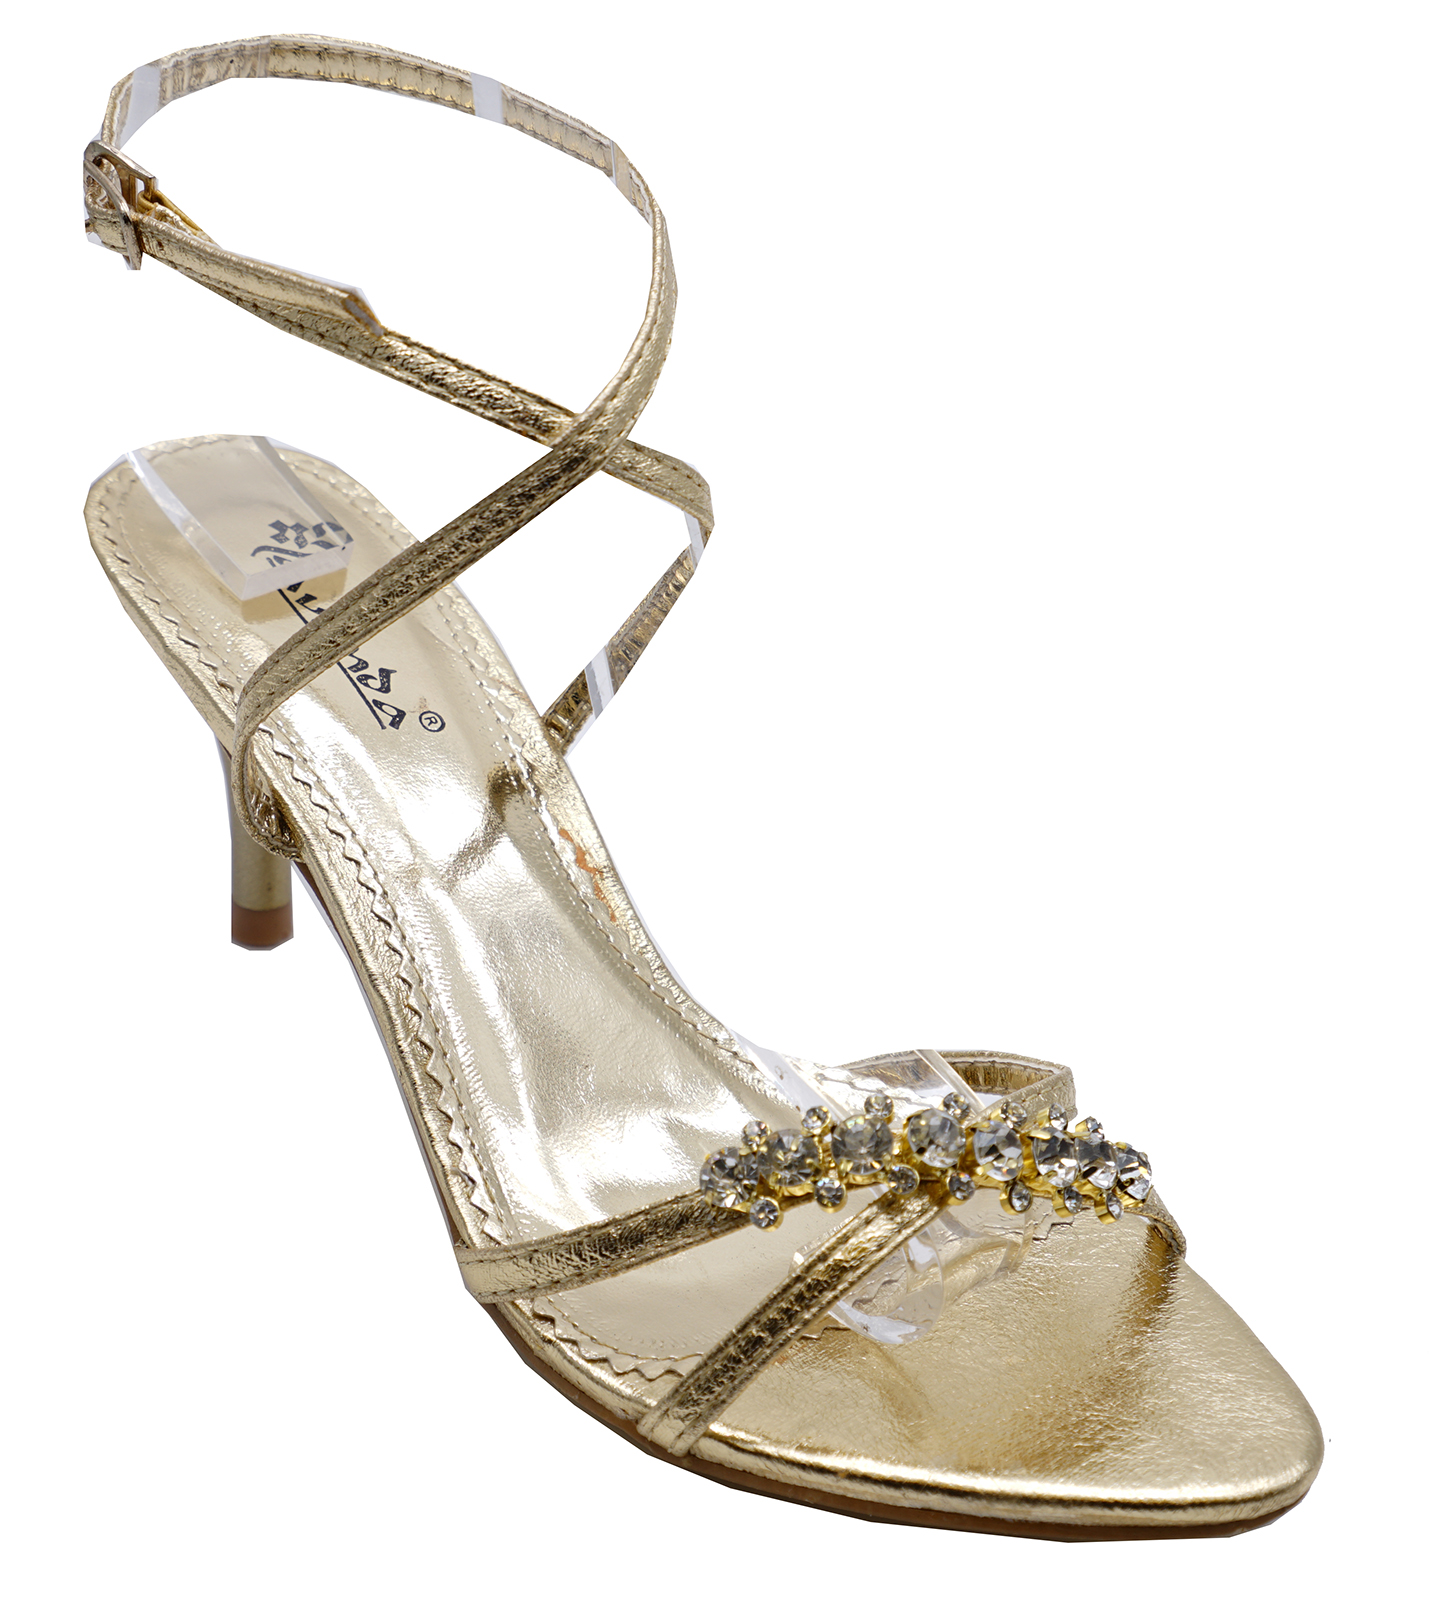 63799a21fe2 Ladies Gold Kitten Heel Strappy Evening Diamante Elegant Sandals Shoes UK  3-8. About this product. Picture 1 of 4  Picture 2 of 4  Picture 3 of 4   Picture 4 ...